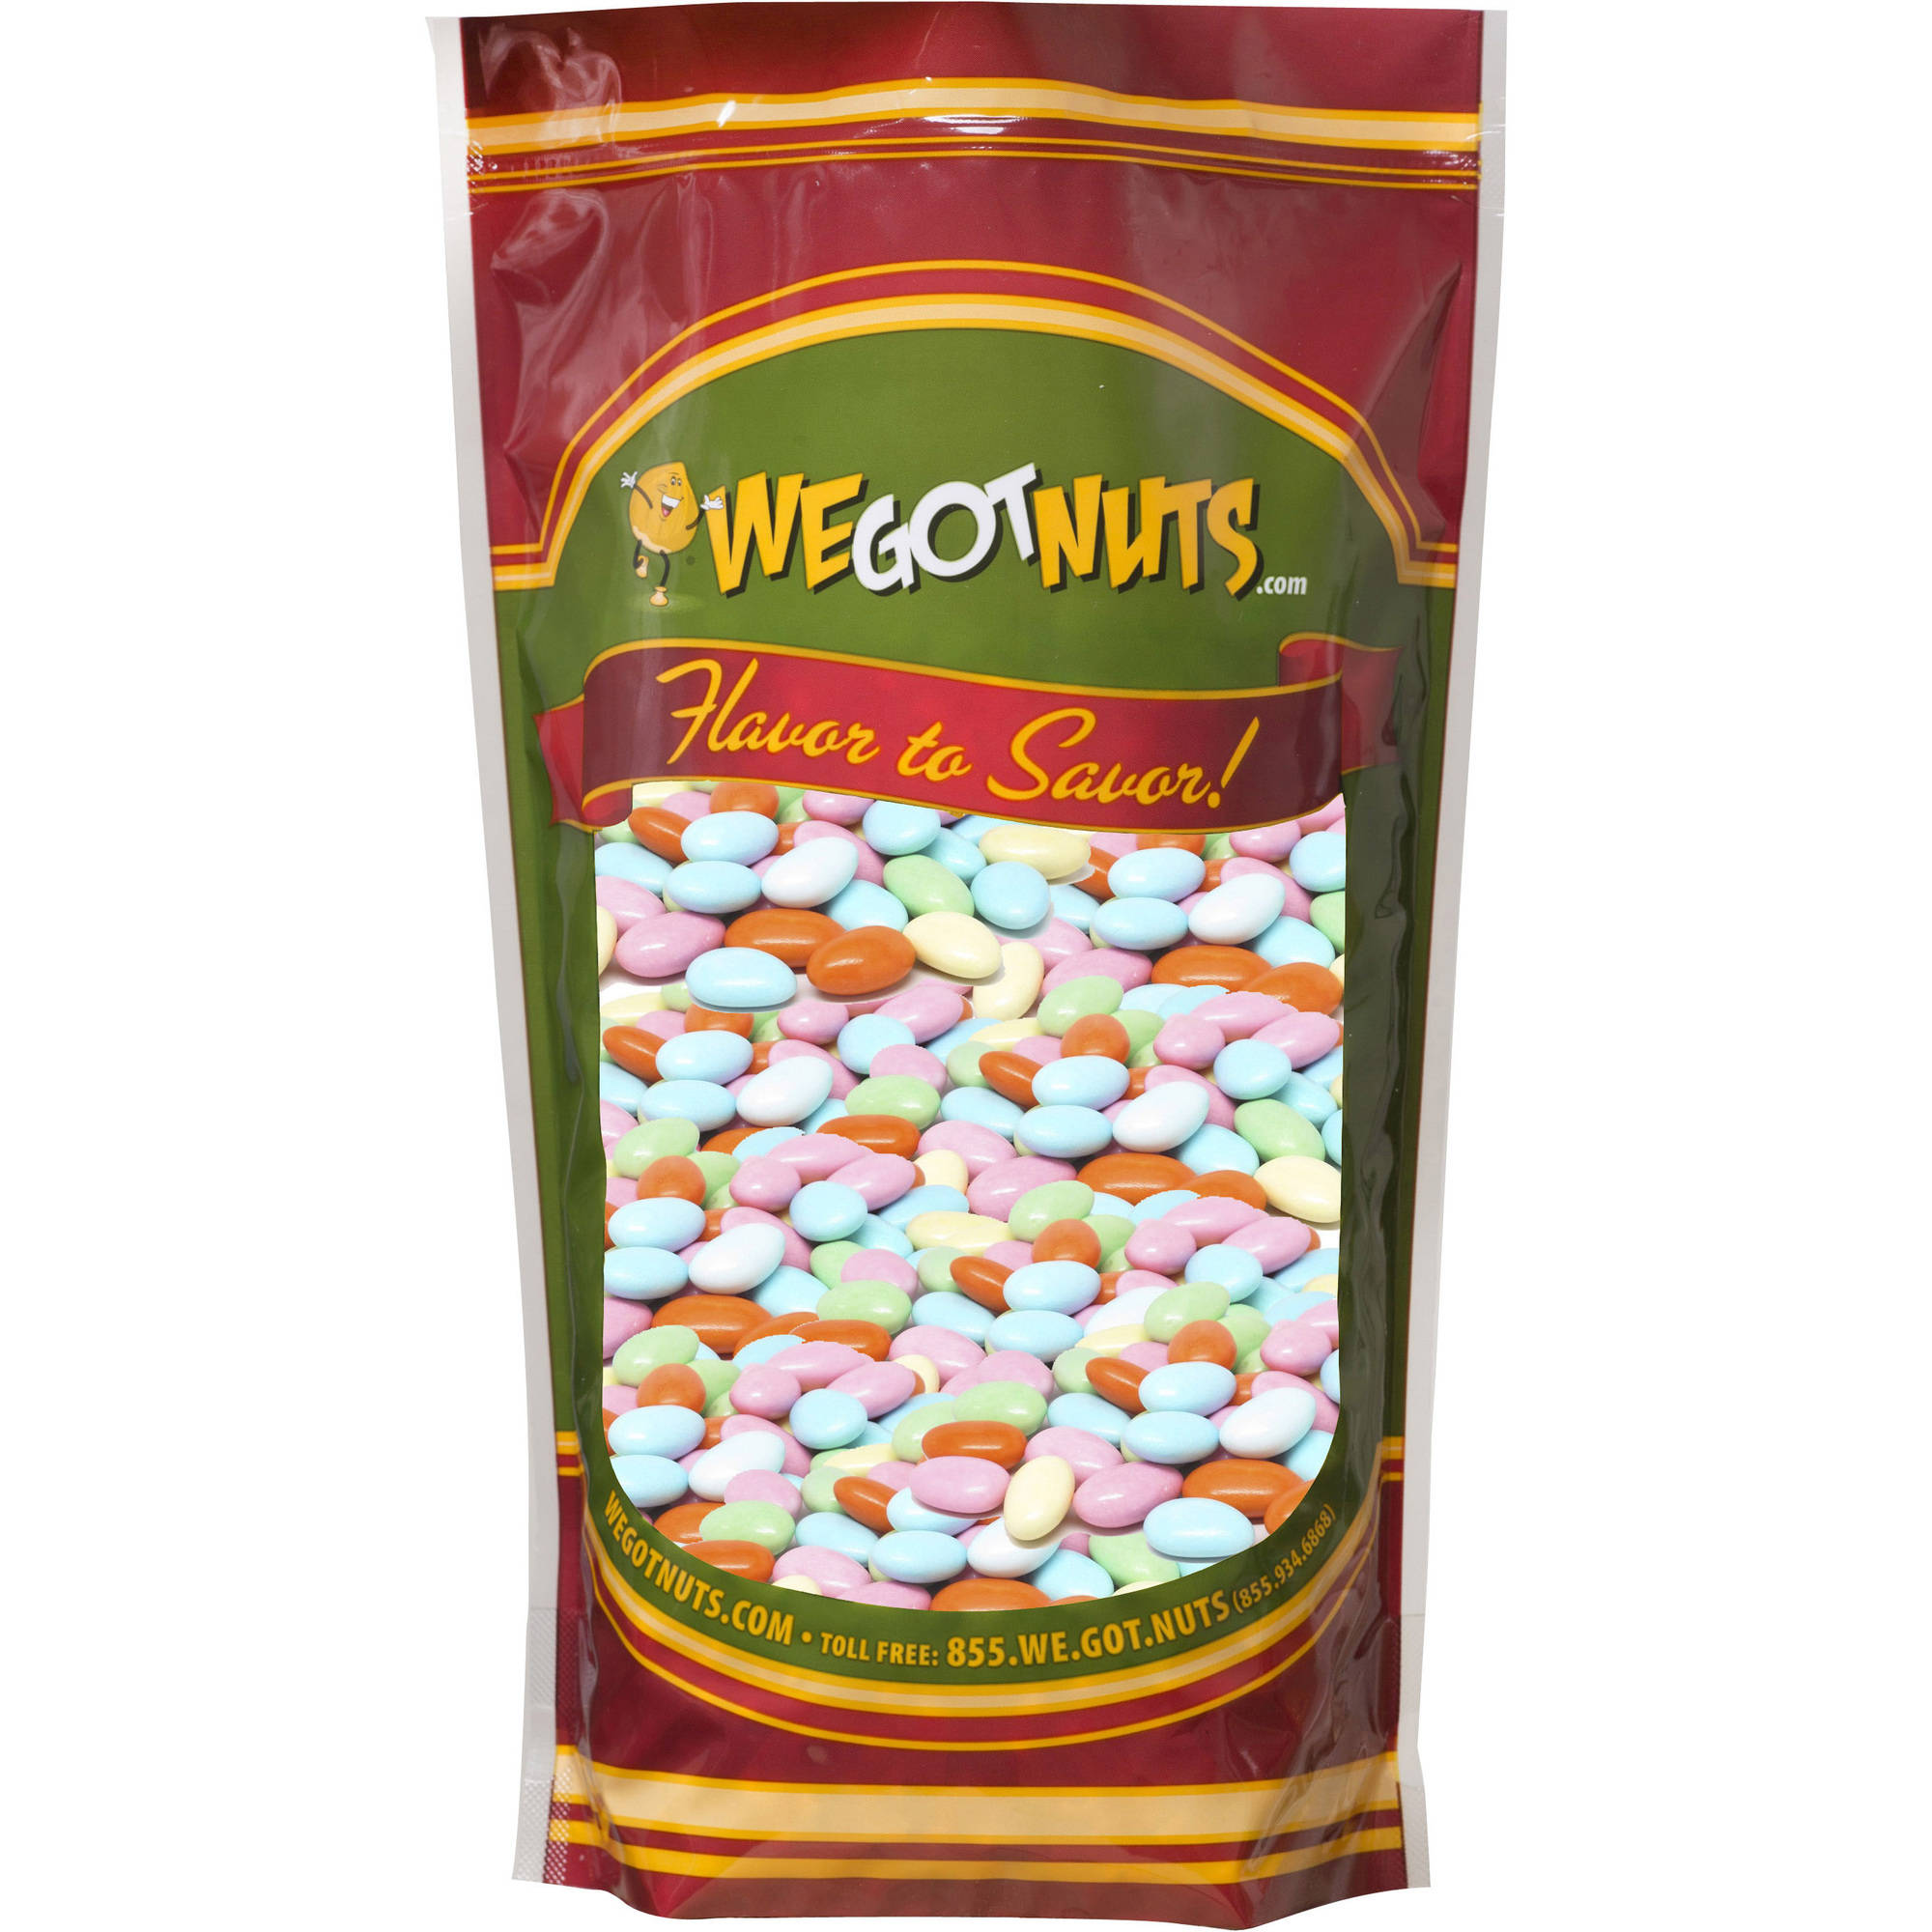 We Got Nuts Candy Coated Mixed Colors Jordan Almonds, 3 lbs